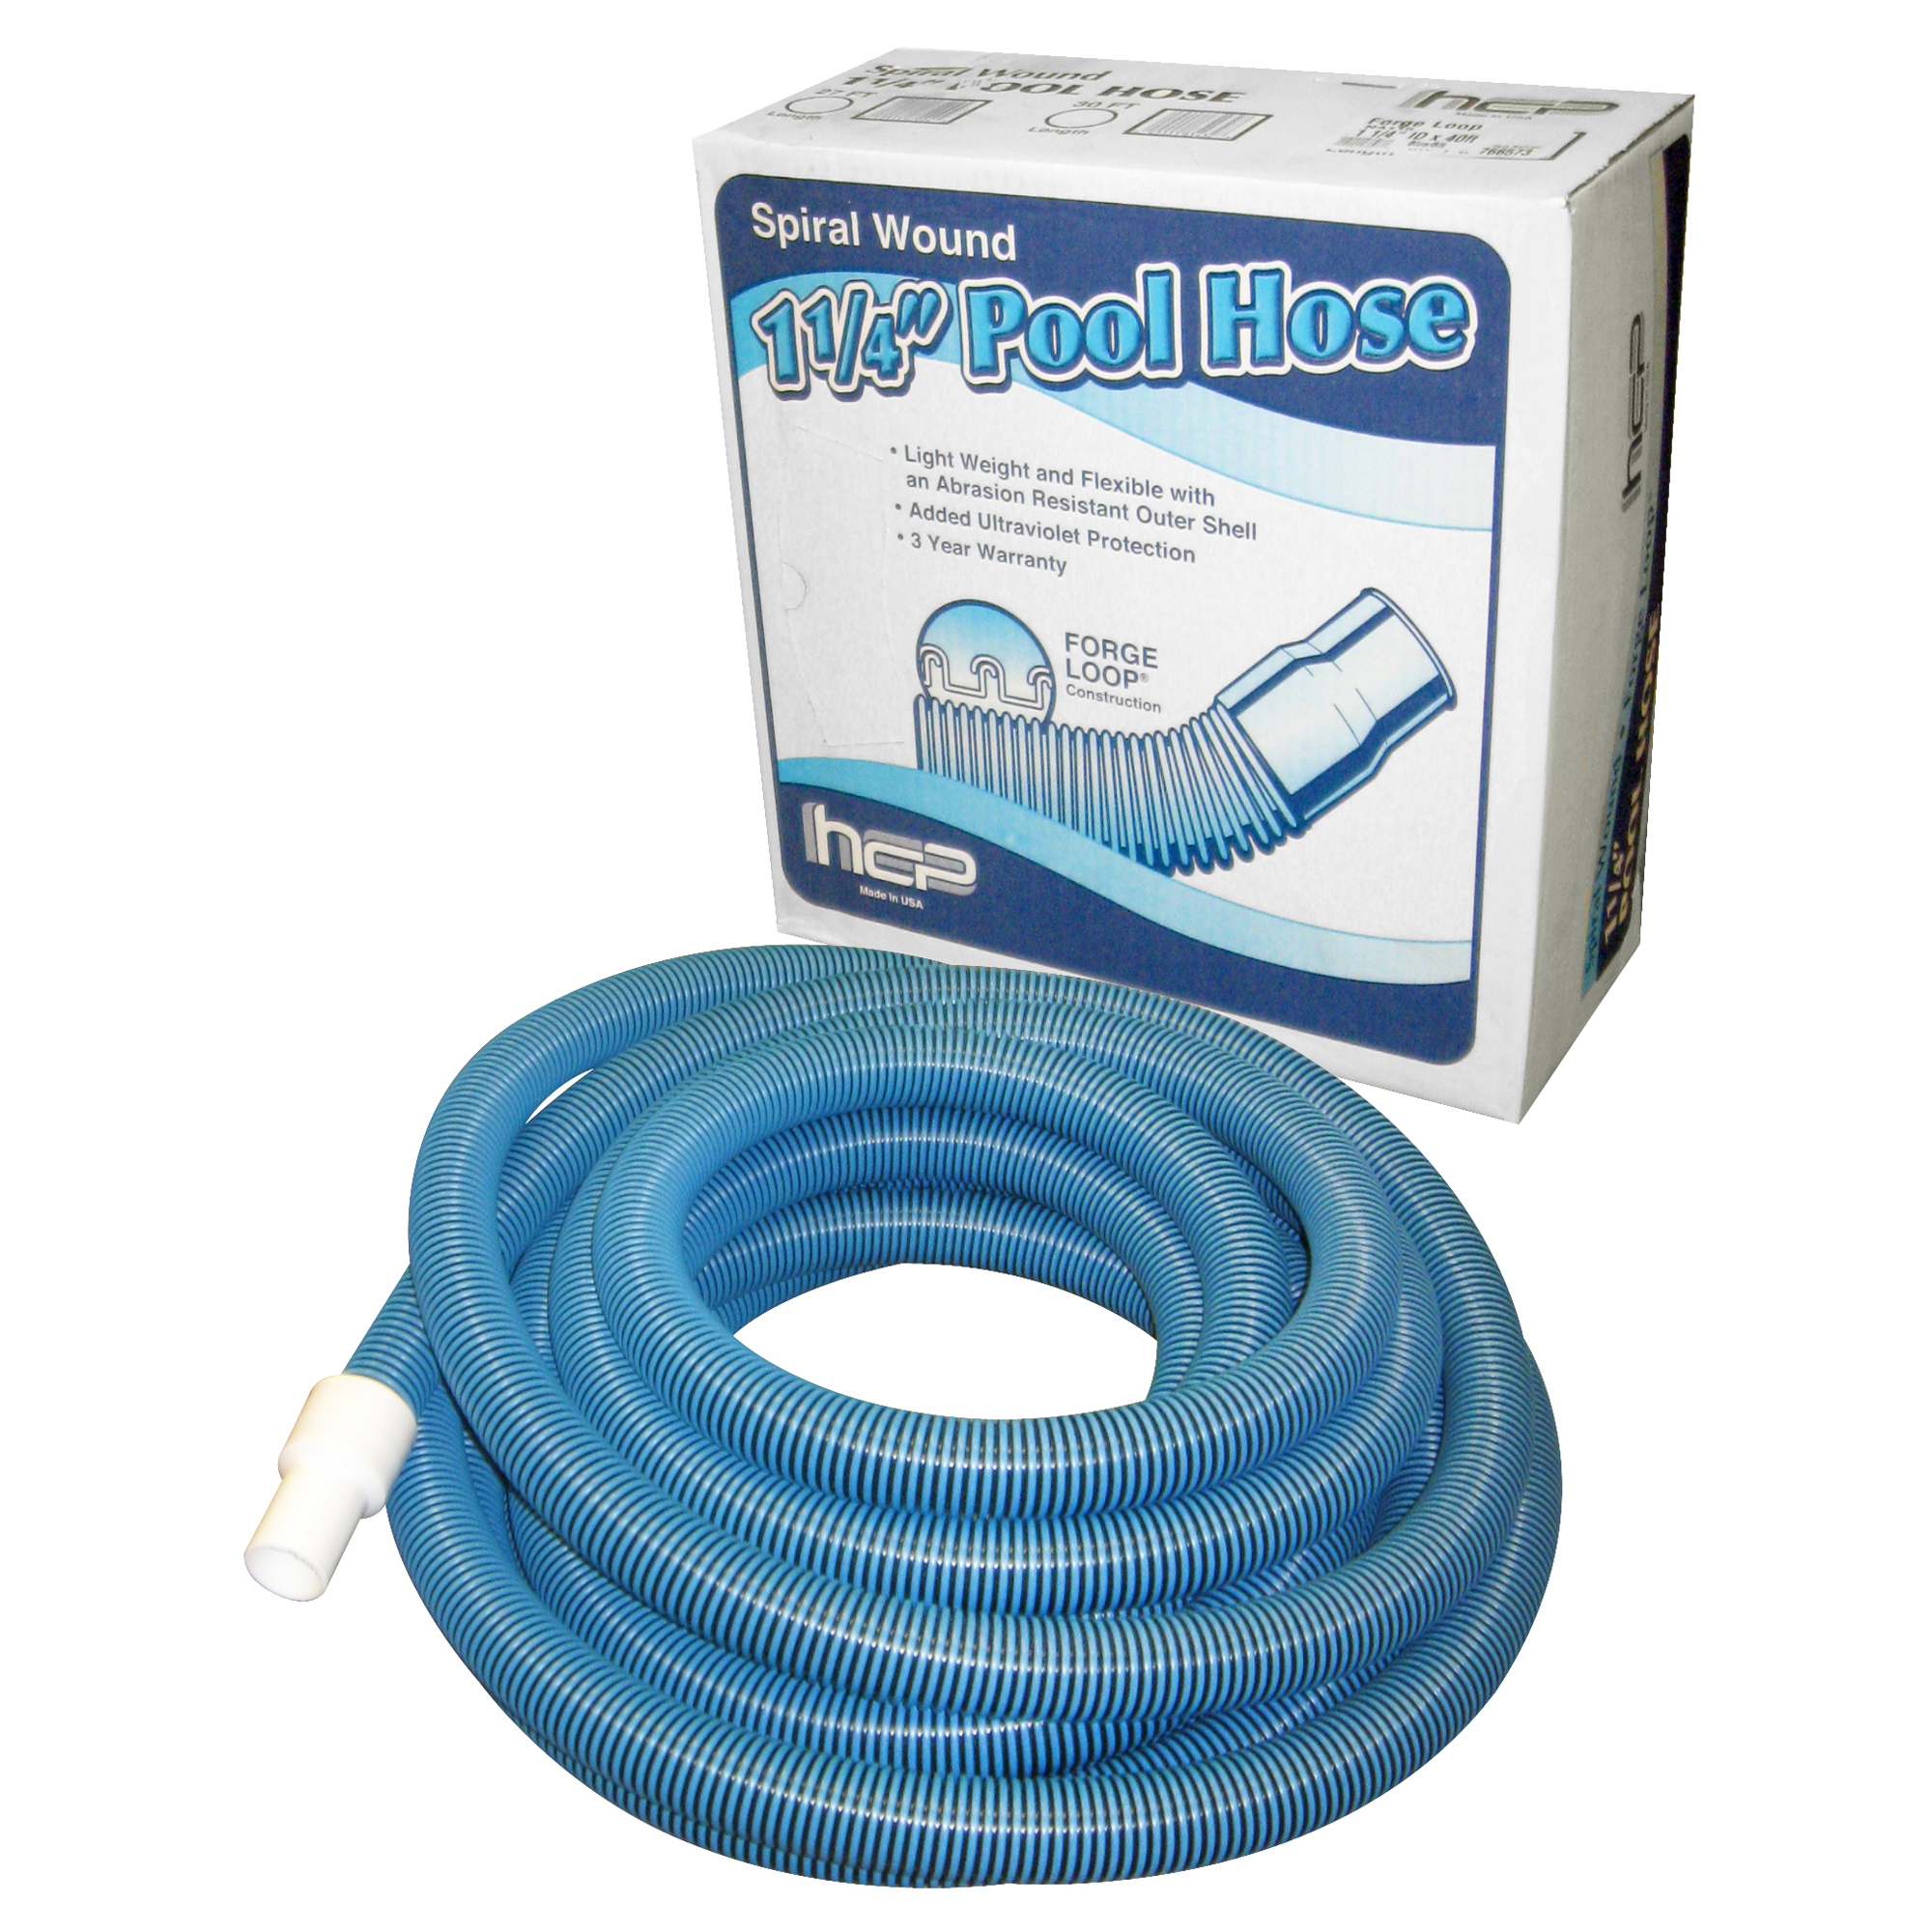 Haviland 18-ft x 1-1/4-in Vac Hose for Above Ground Pools